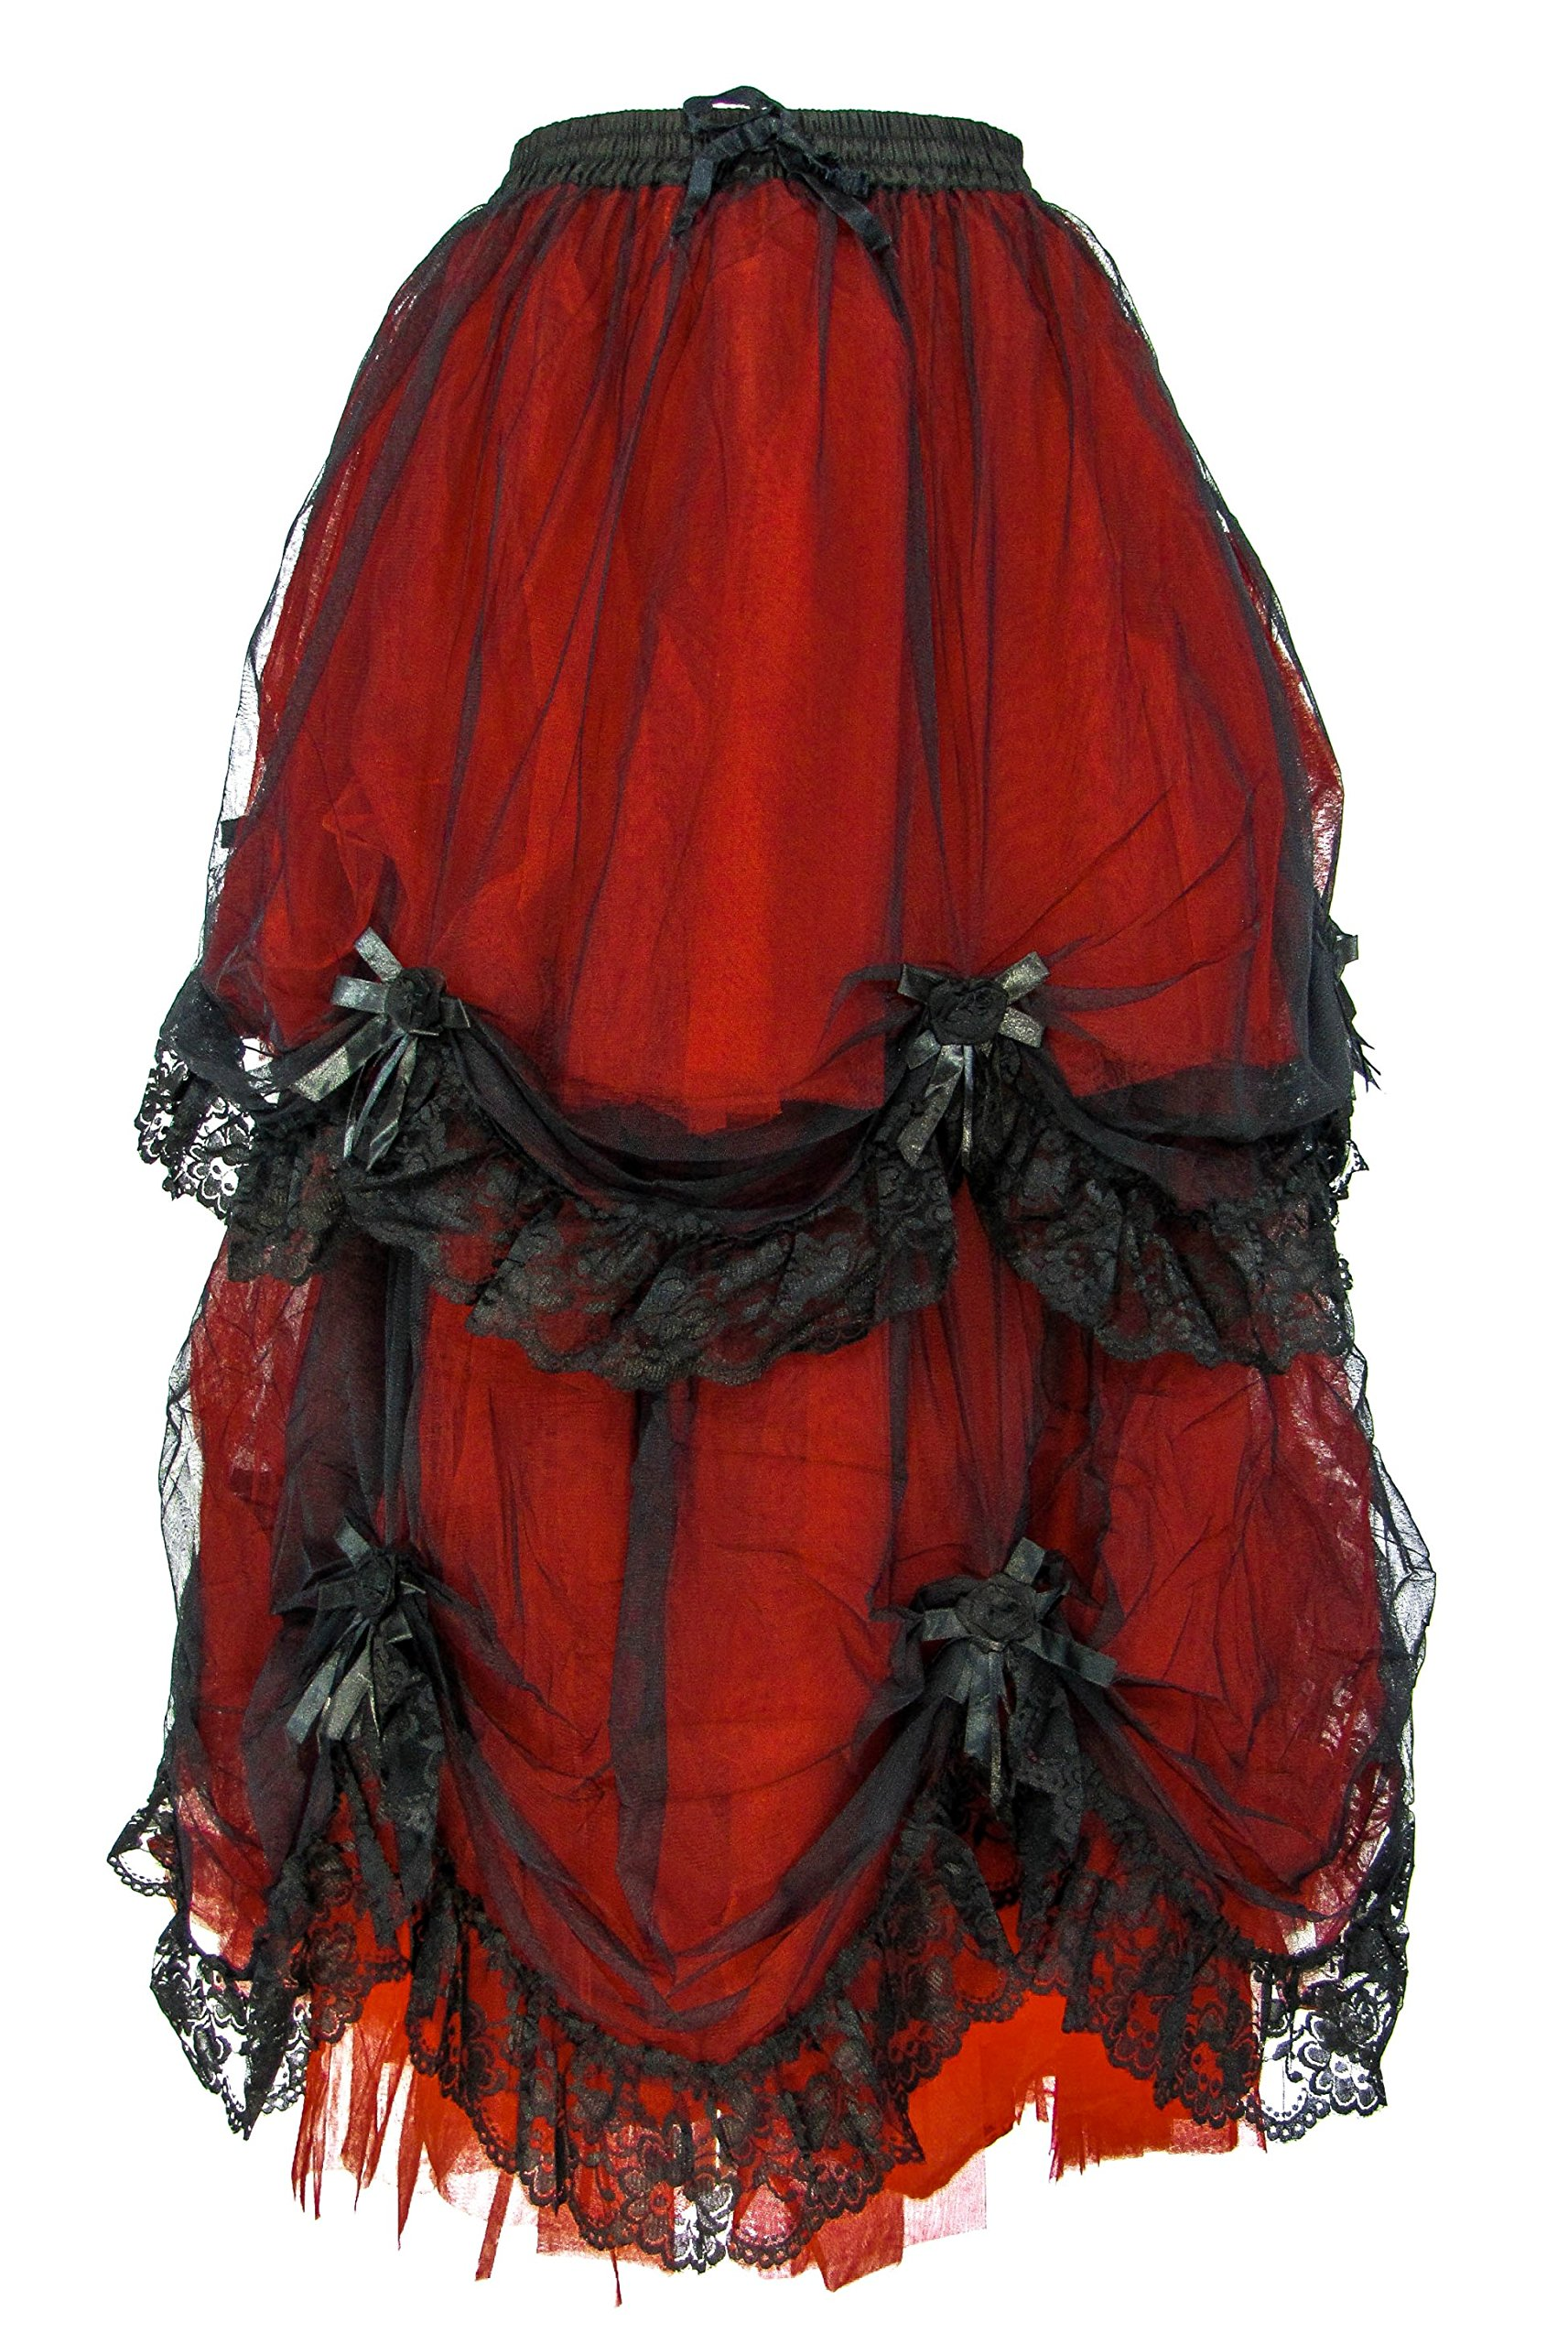 Dark Star Plus Size Long Black Red Satin Roses Gothic Medieval Fairytale Skirt M-2X